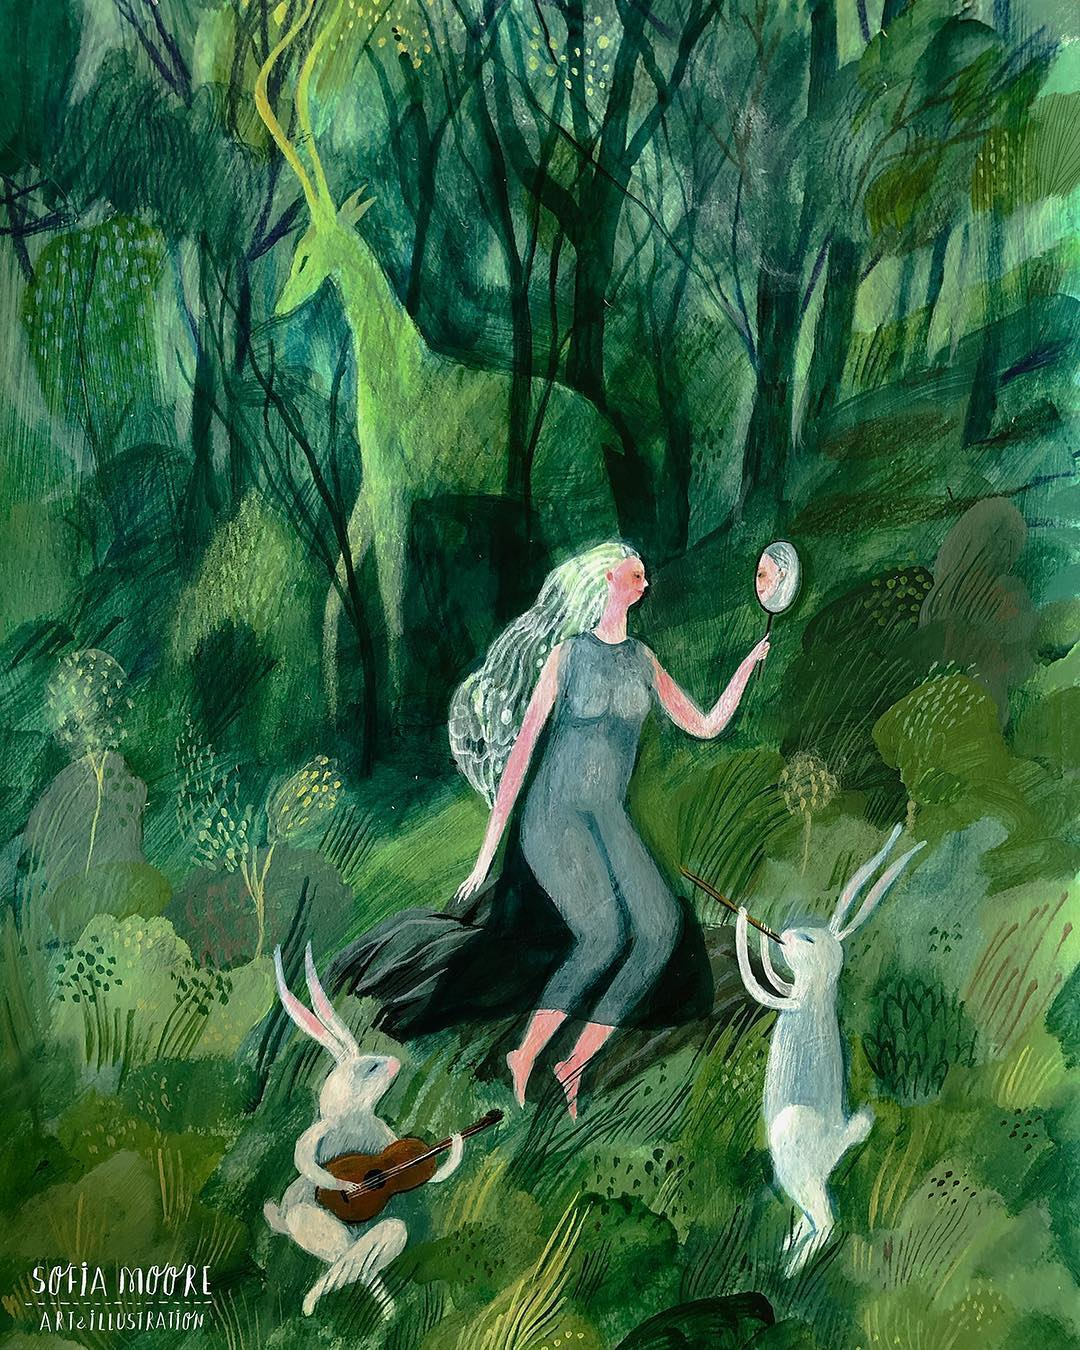 Imaginary illustrations by Sofia Moore